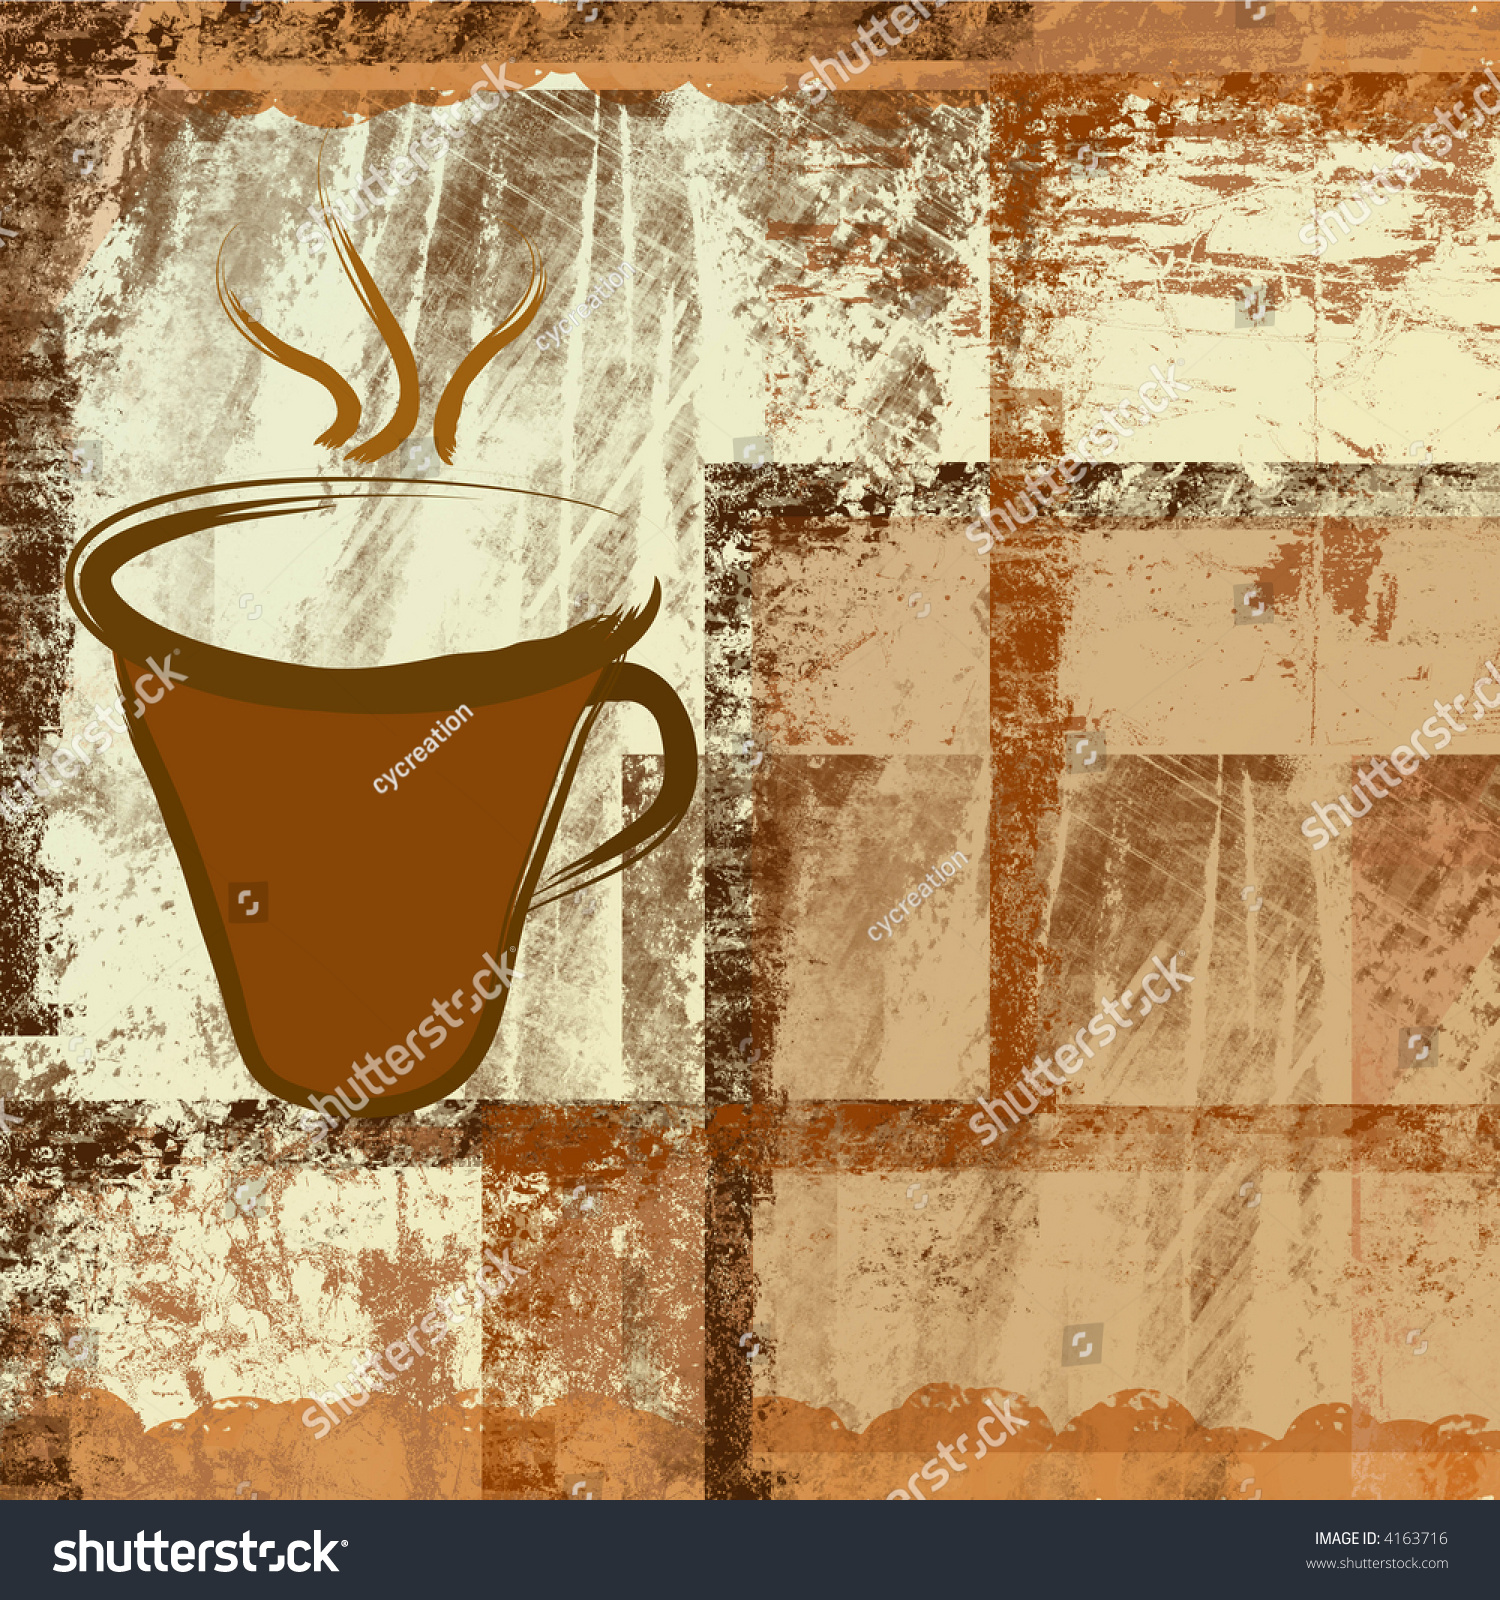 Coffee cup frames - Coffee Cup On Brown Grunge Frames Background Preview Save To A Lightbox